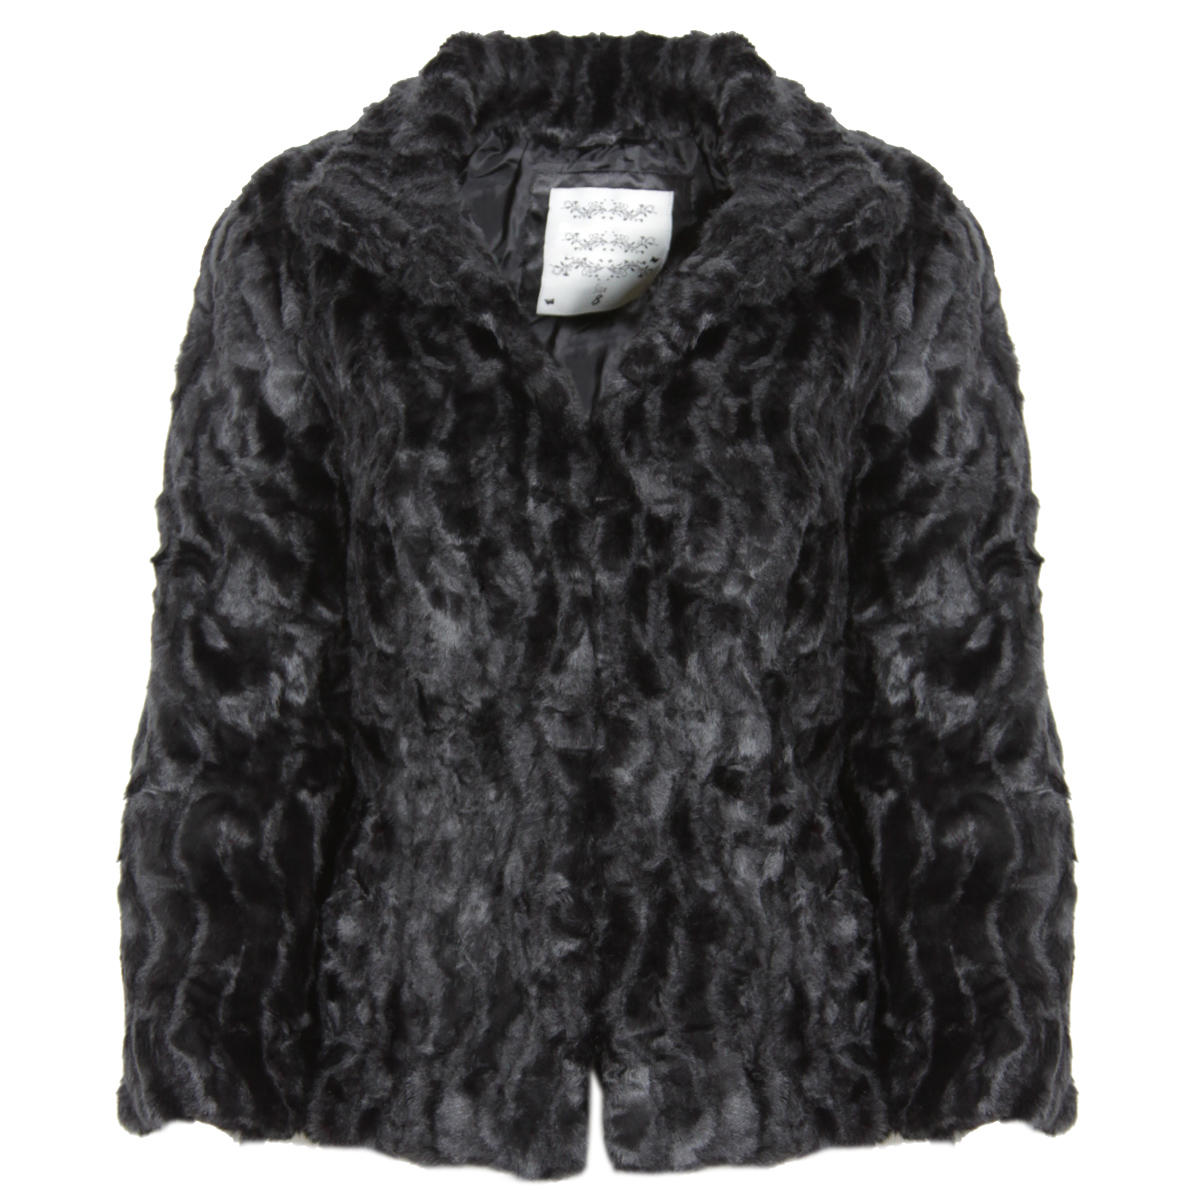 Black 3/4 Sleeve Cropped Faux Fur Jacket Preview